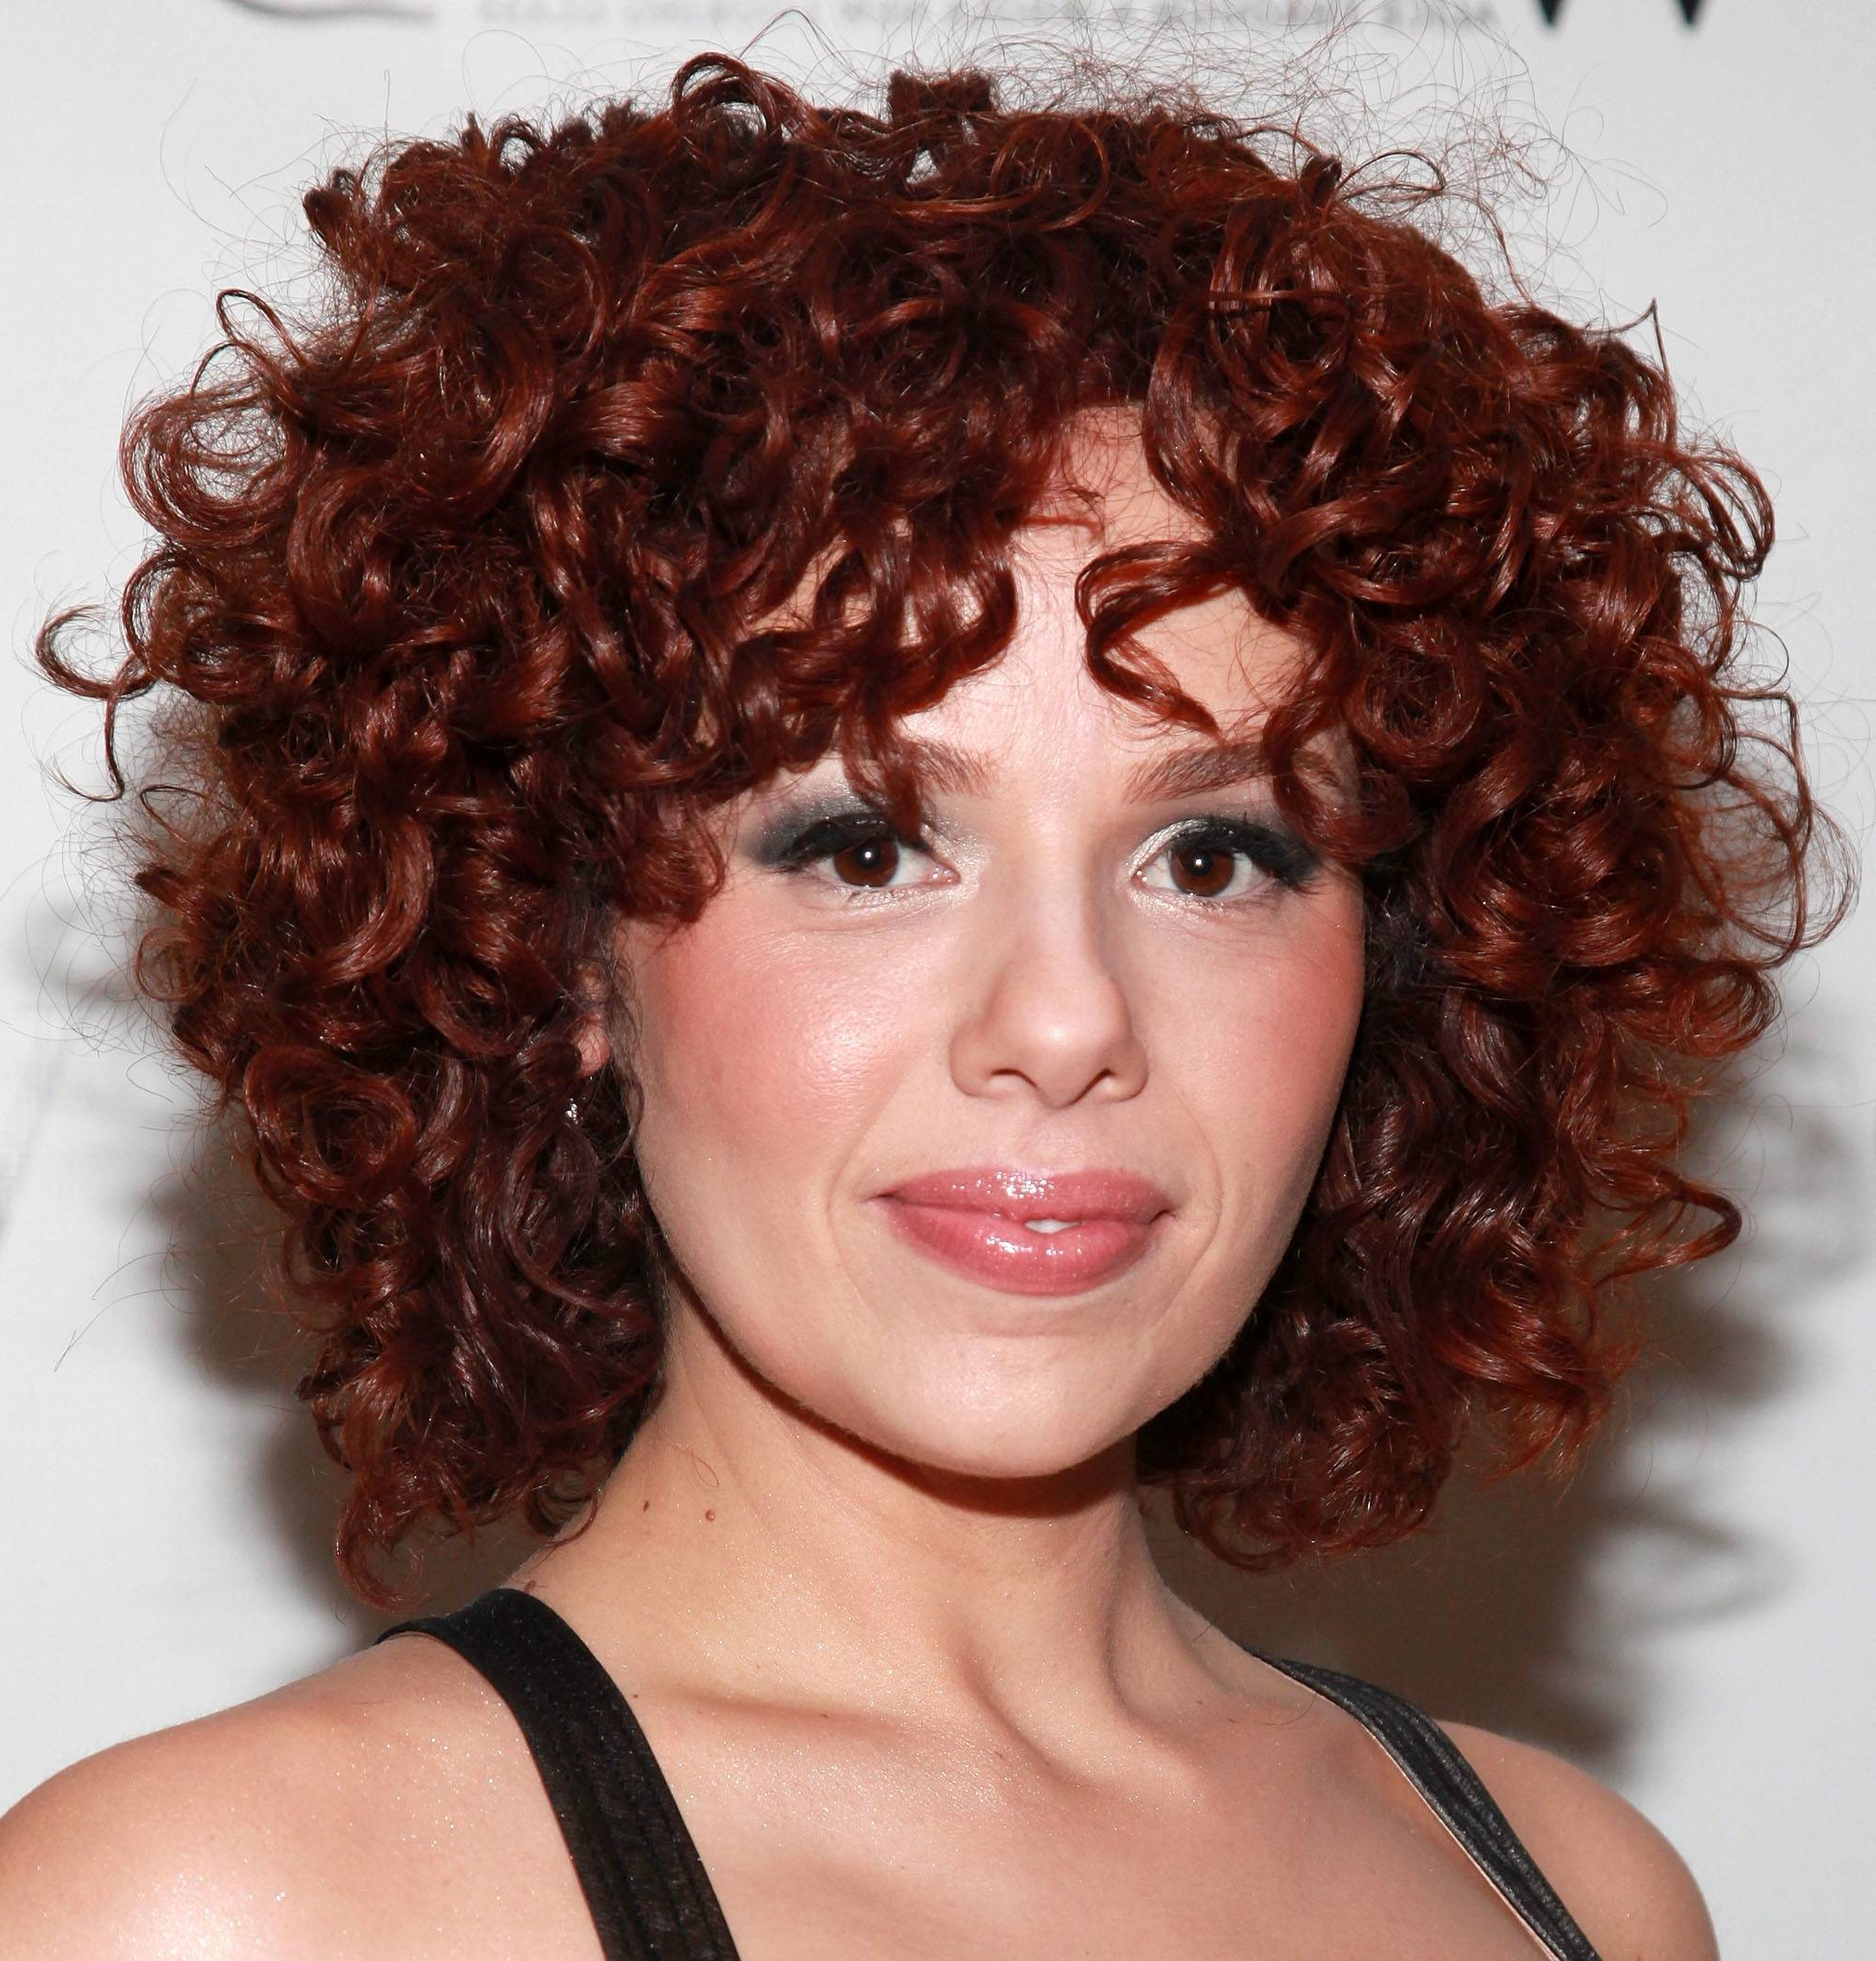 Short Cut Curly Hairstyles – Hairstyle For Women & Man Pertaining To Short Haircuts For Very Curly Hair (View 4 of 25)